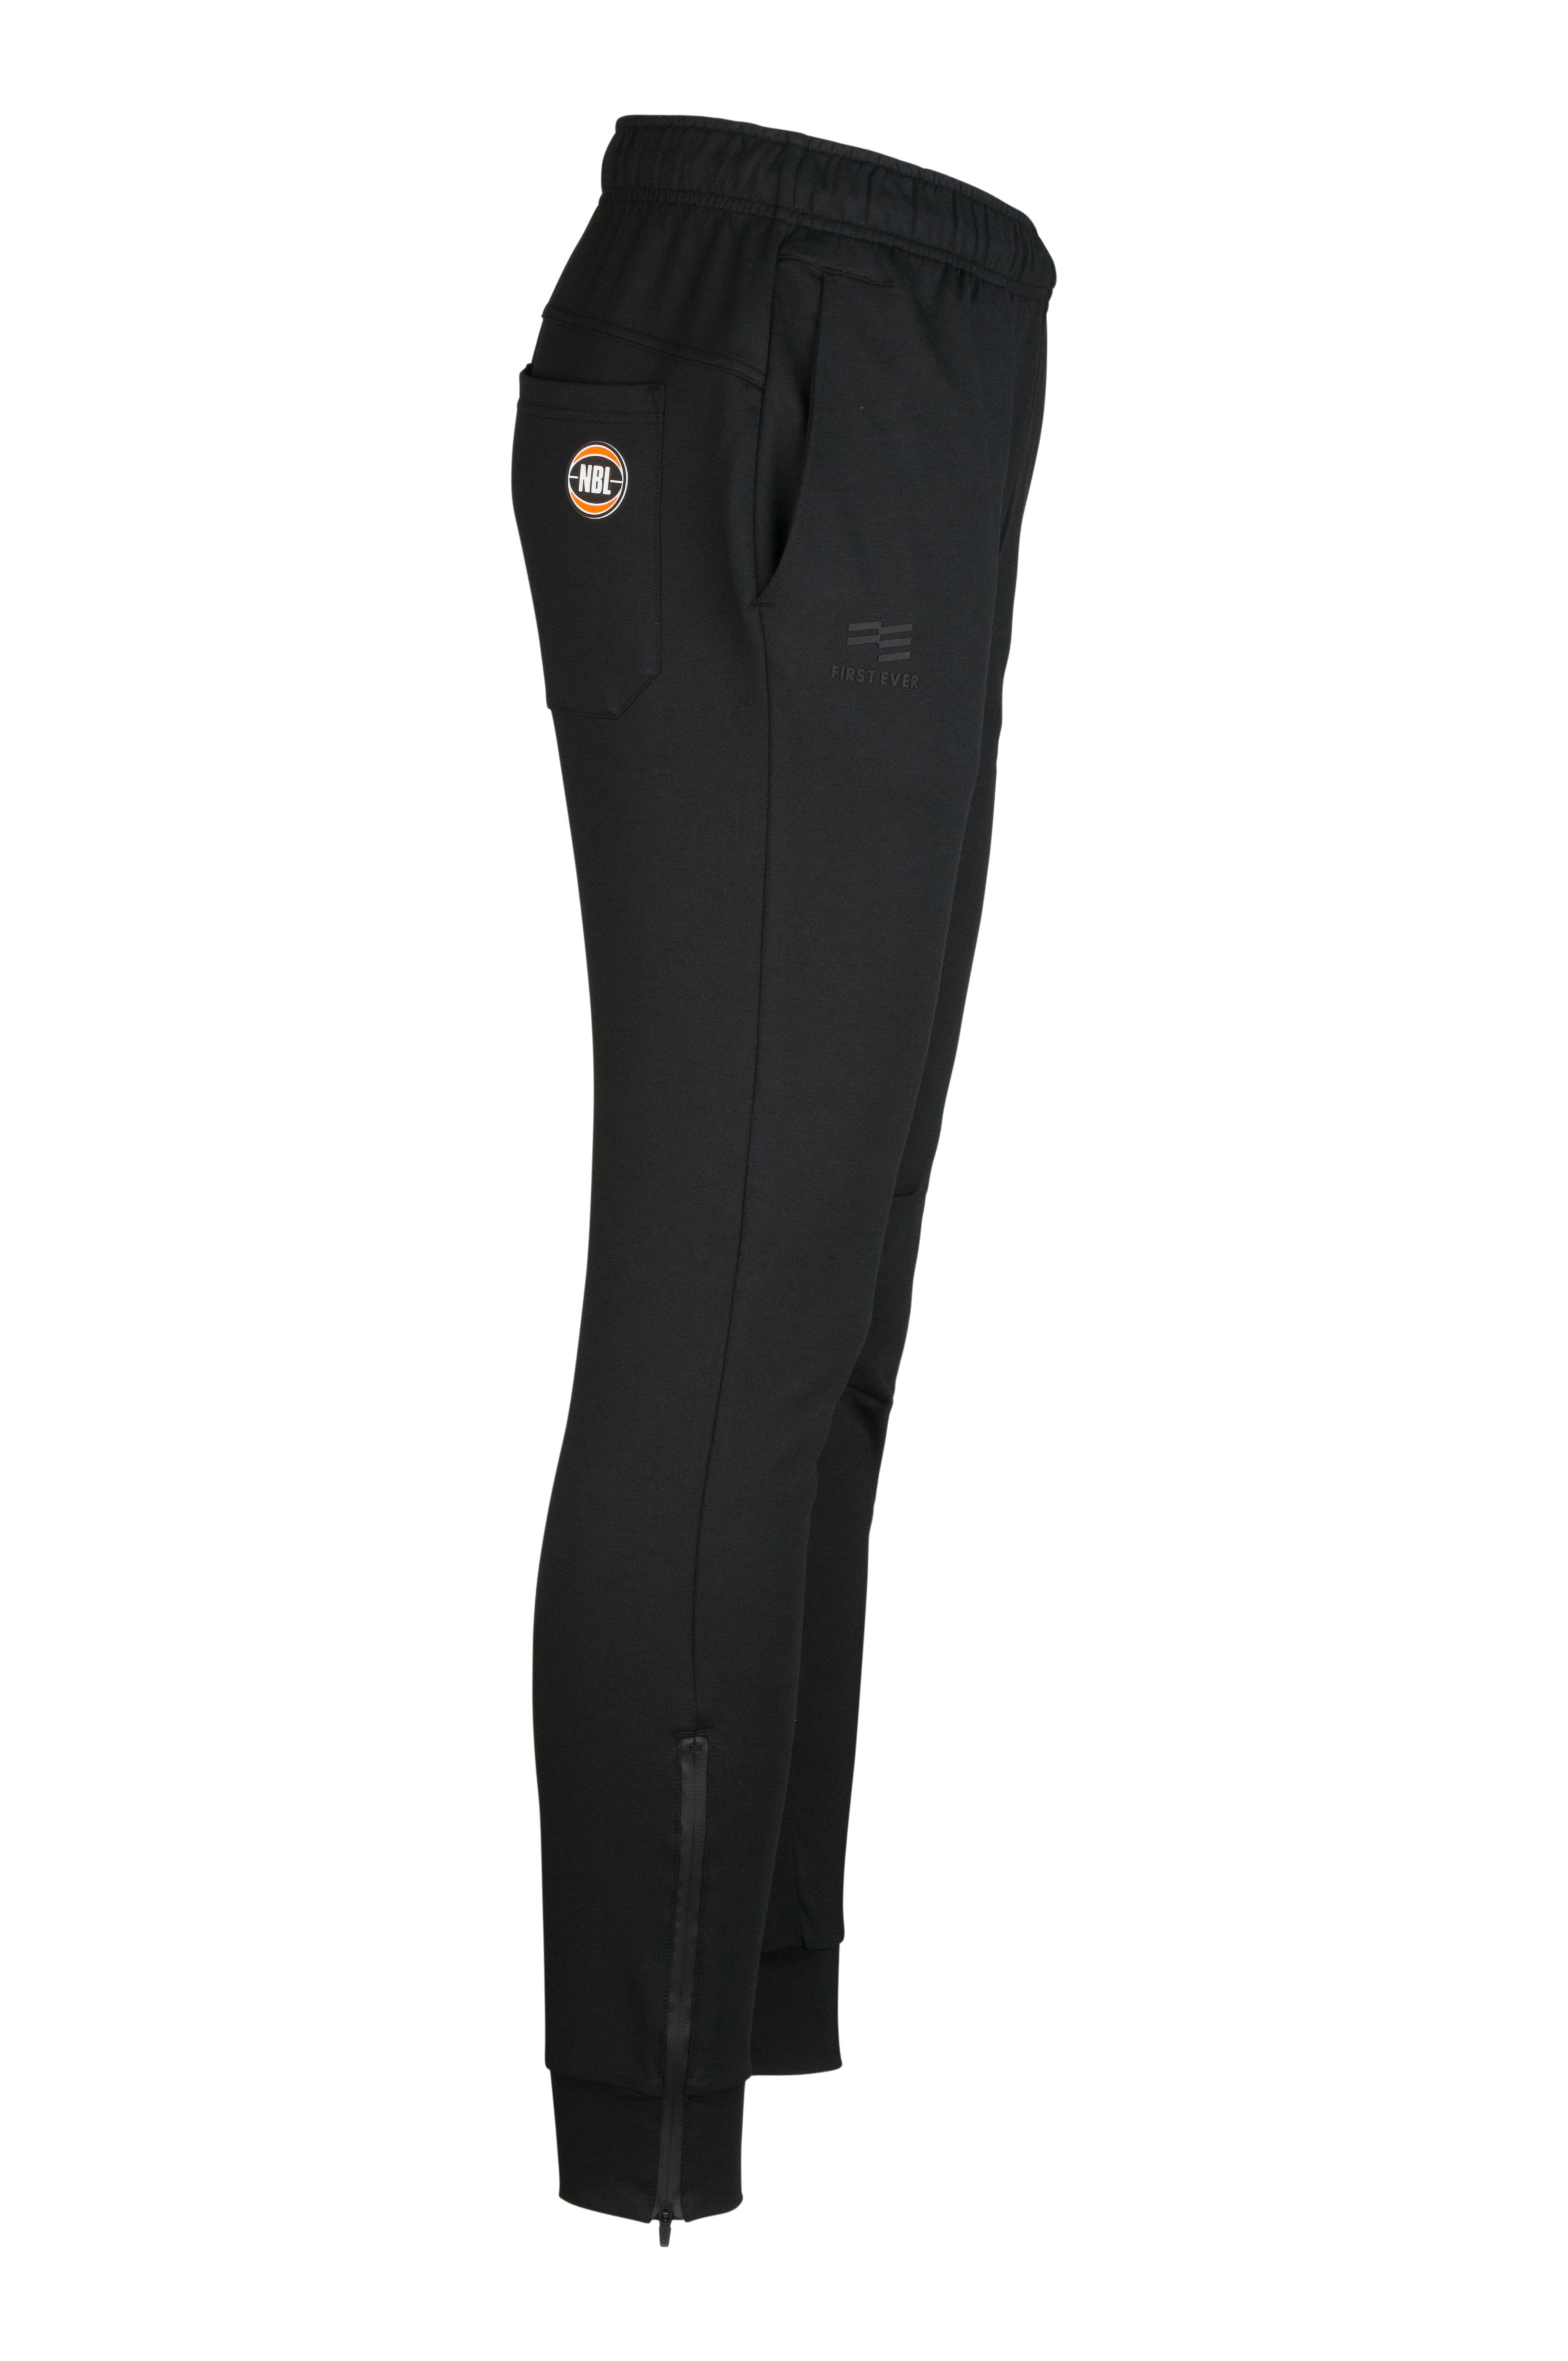 New Zealand Breakers 19/20 Performance Trackpant